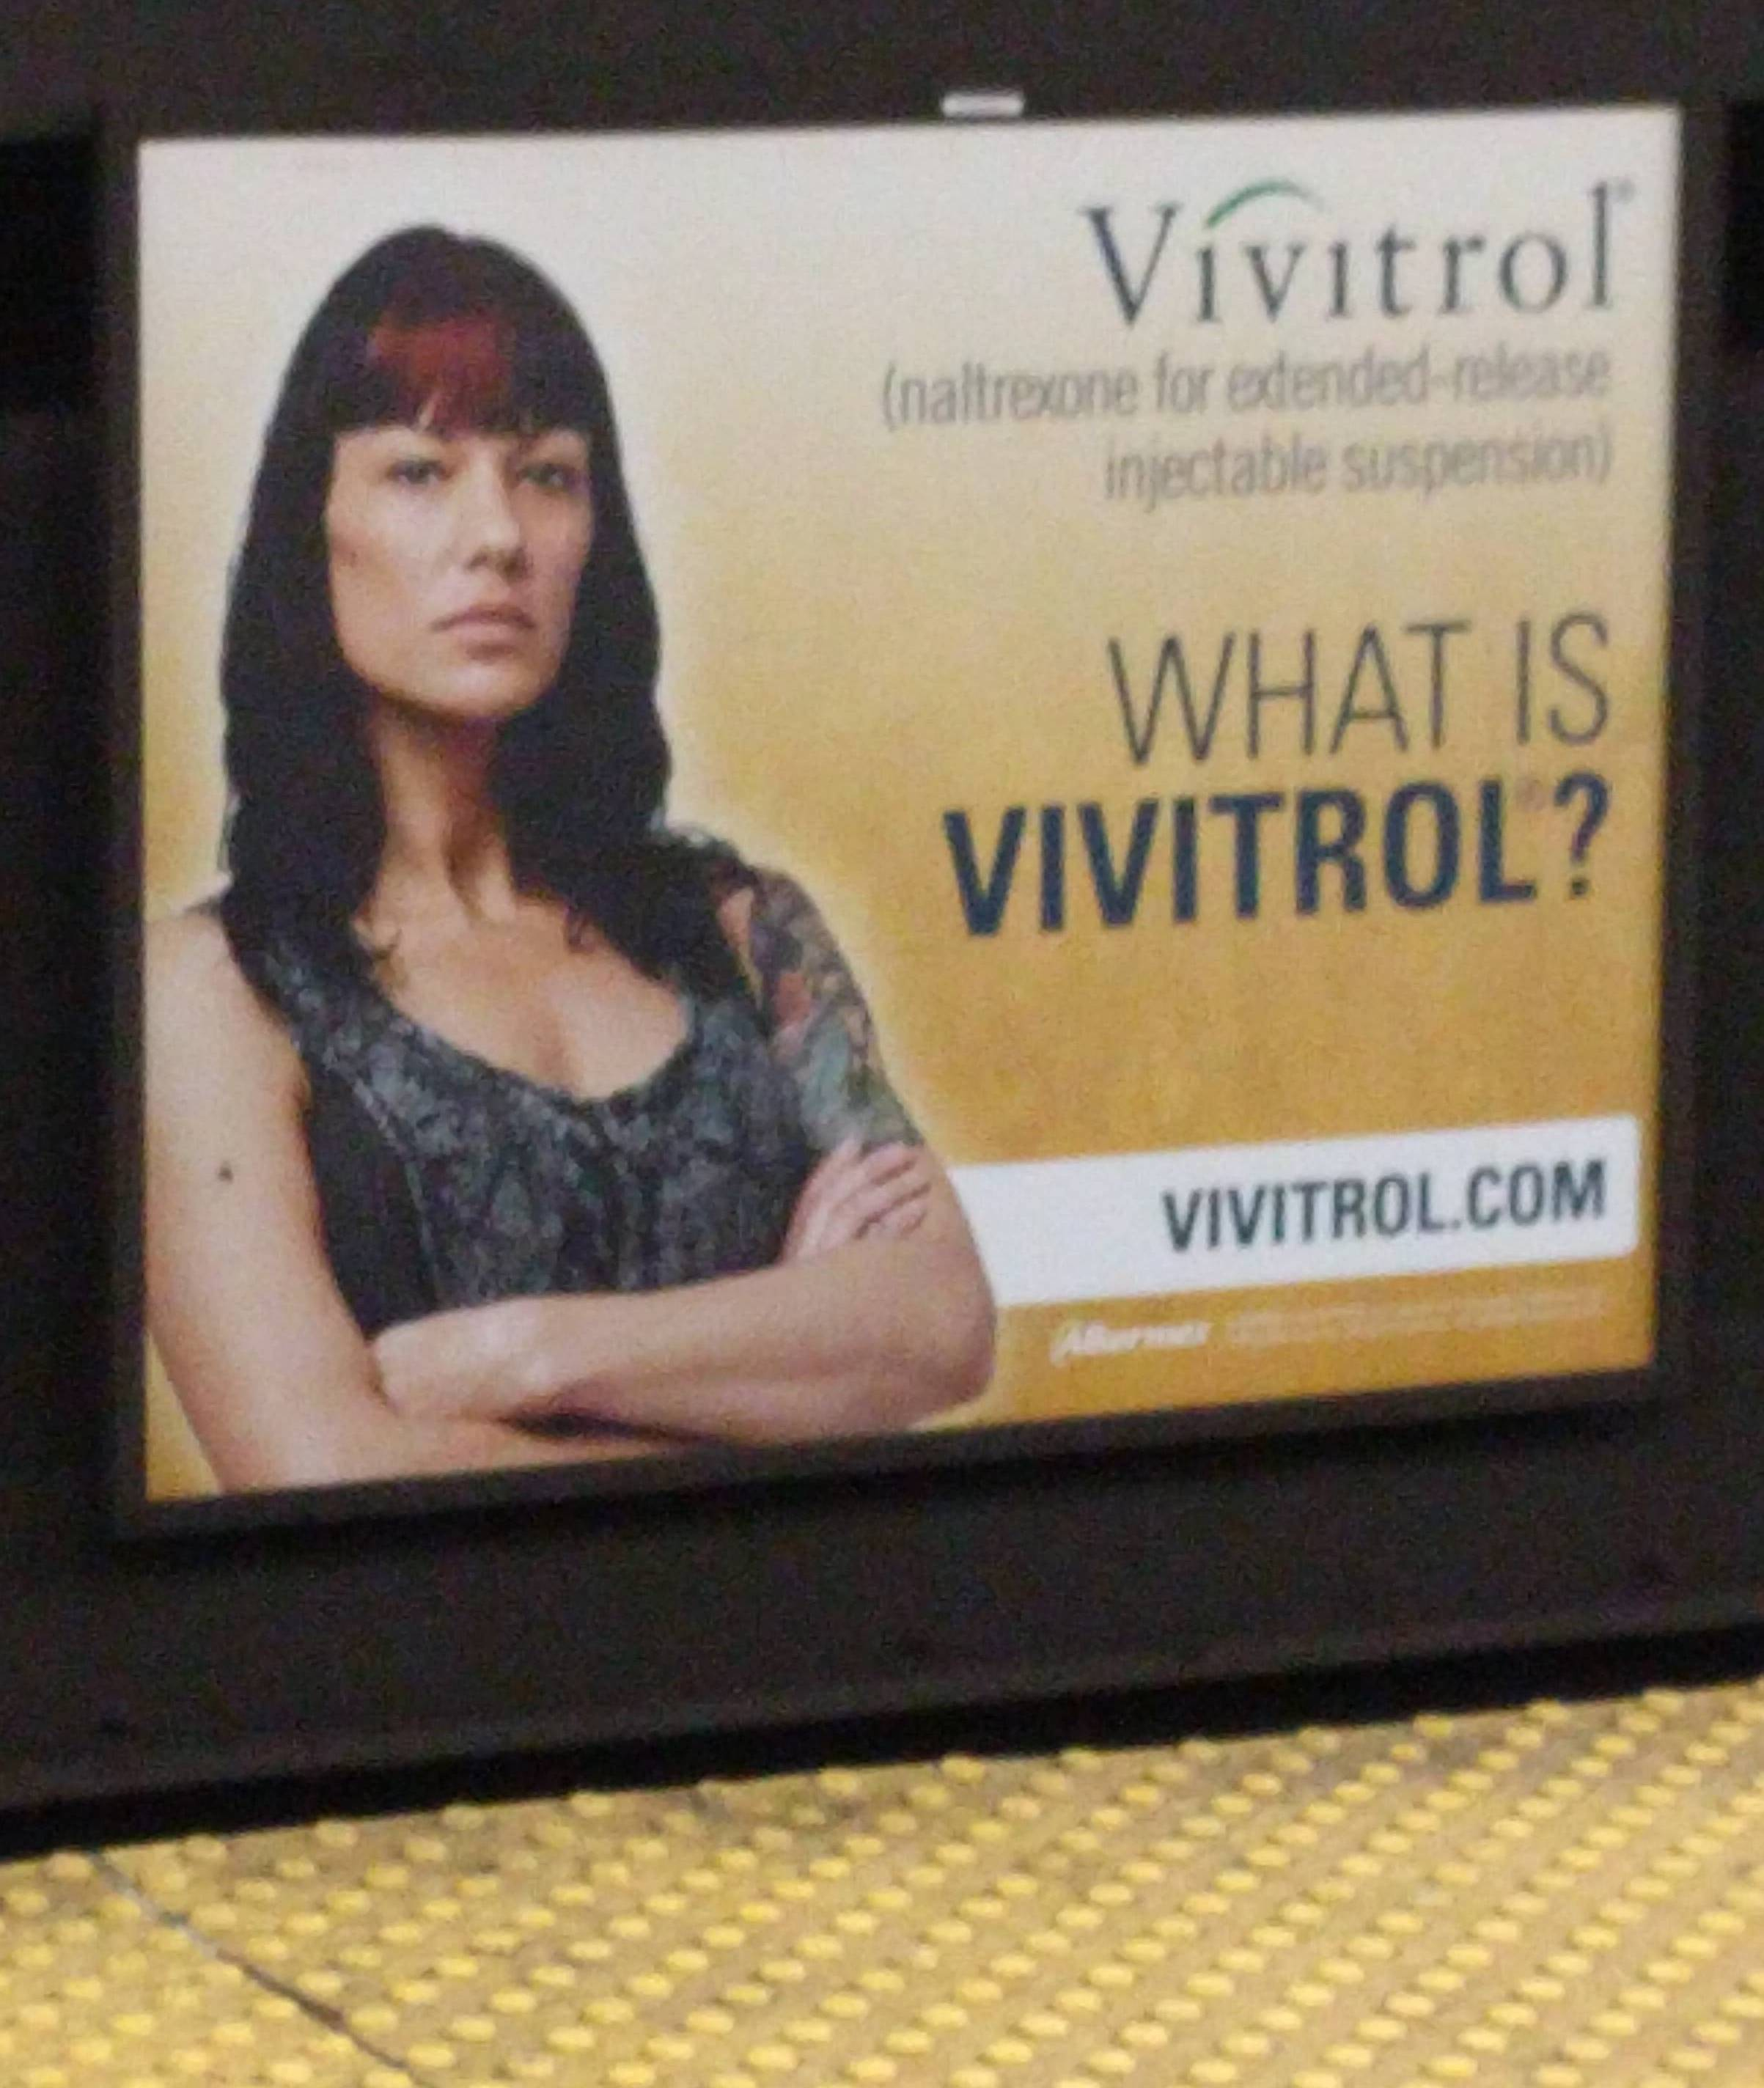 What is Vivitrol?